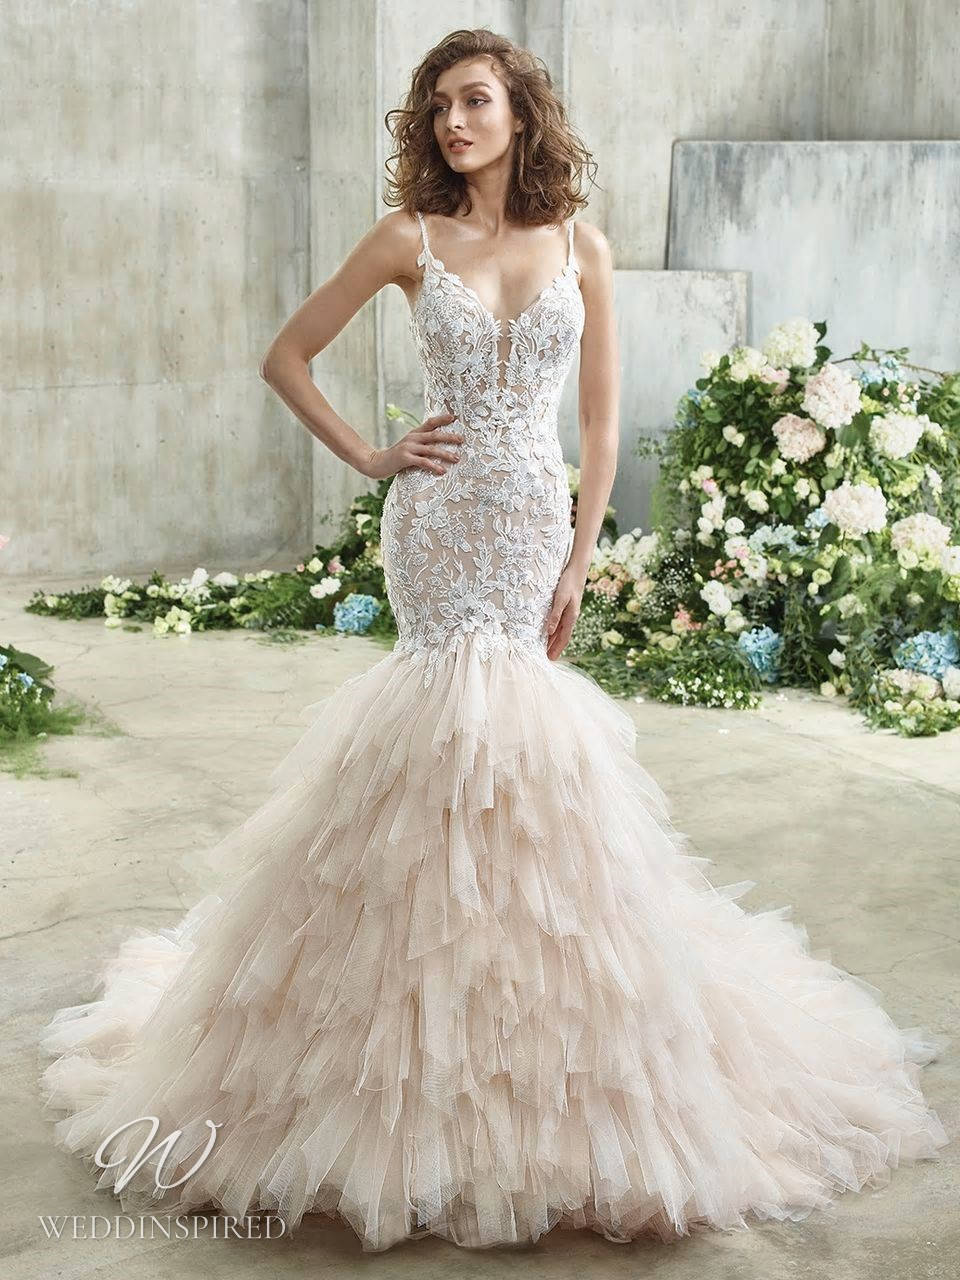 A Badgley Mischka lace mermaid wedding dress with a tulle ruffle skirt and spaghetti straps